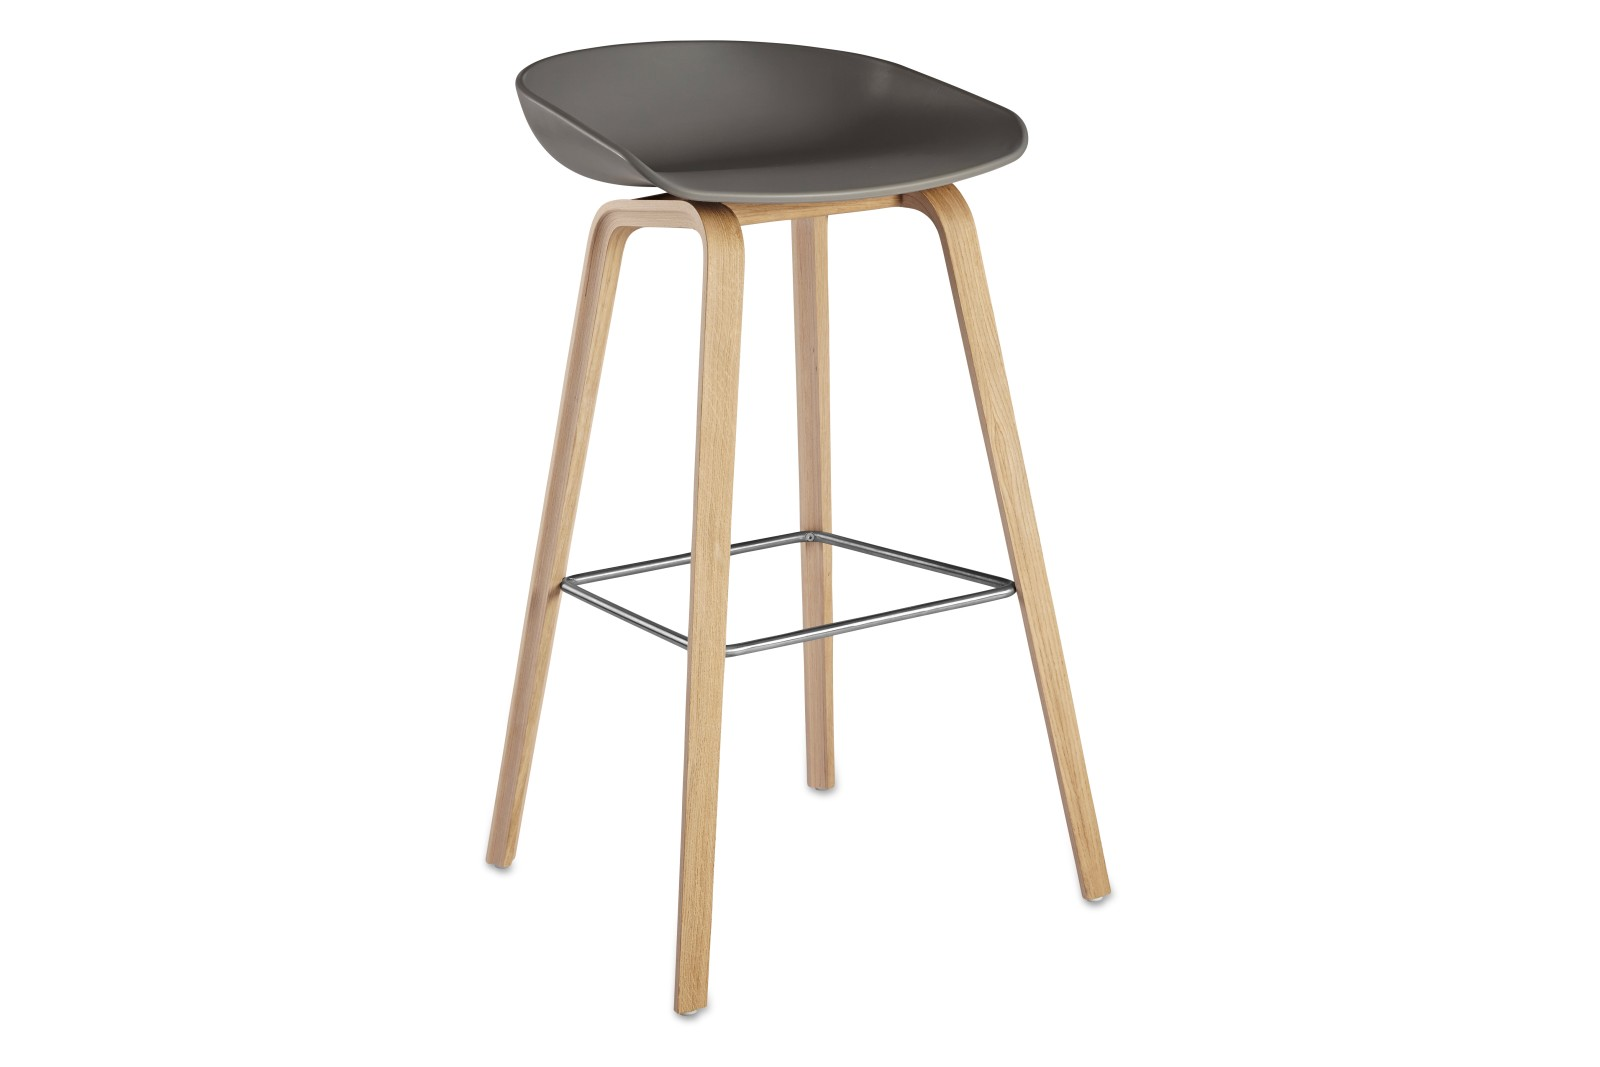 About A Stool AAS32 Clear Lacquered Oak Base, Grey Seat, High, Black Powder Coated Steel